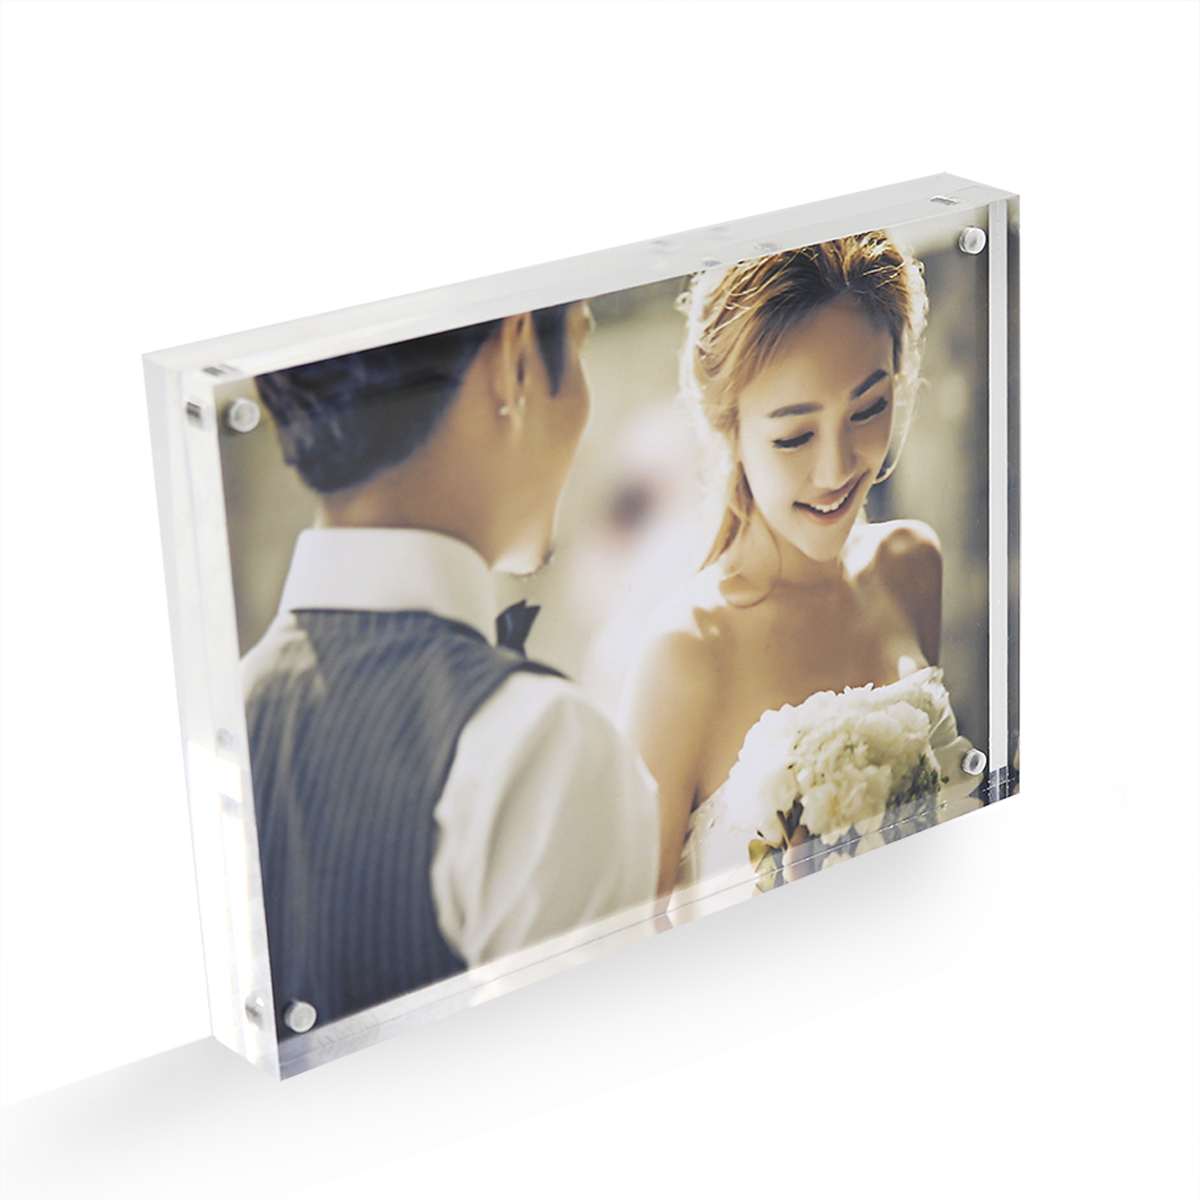 Desktop Double Sided Acrylic Photo Frame with Gift Box Package